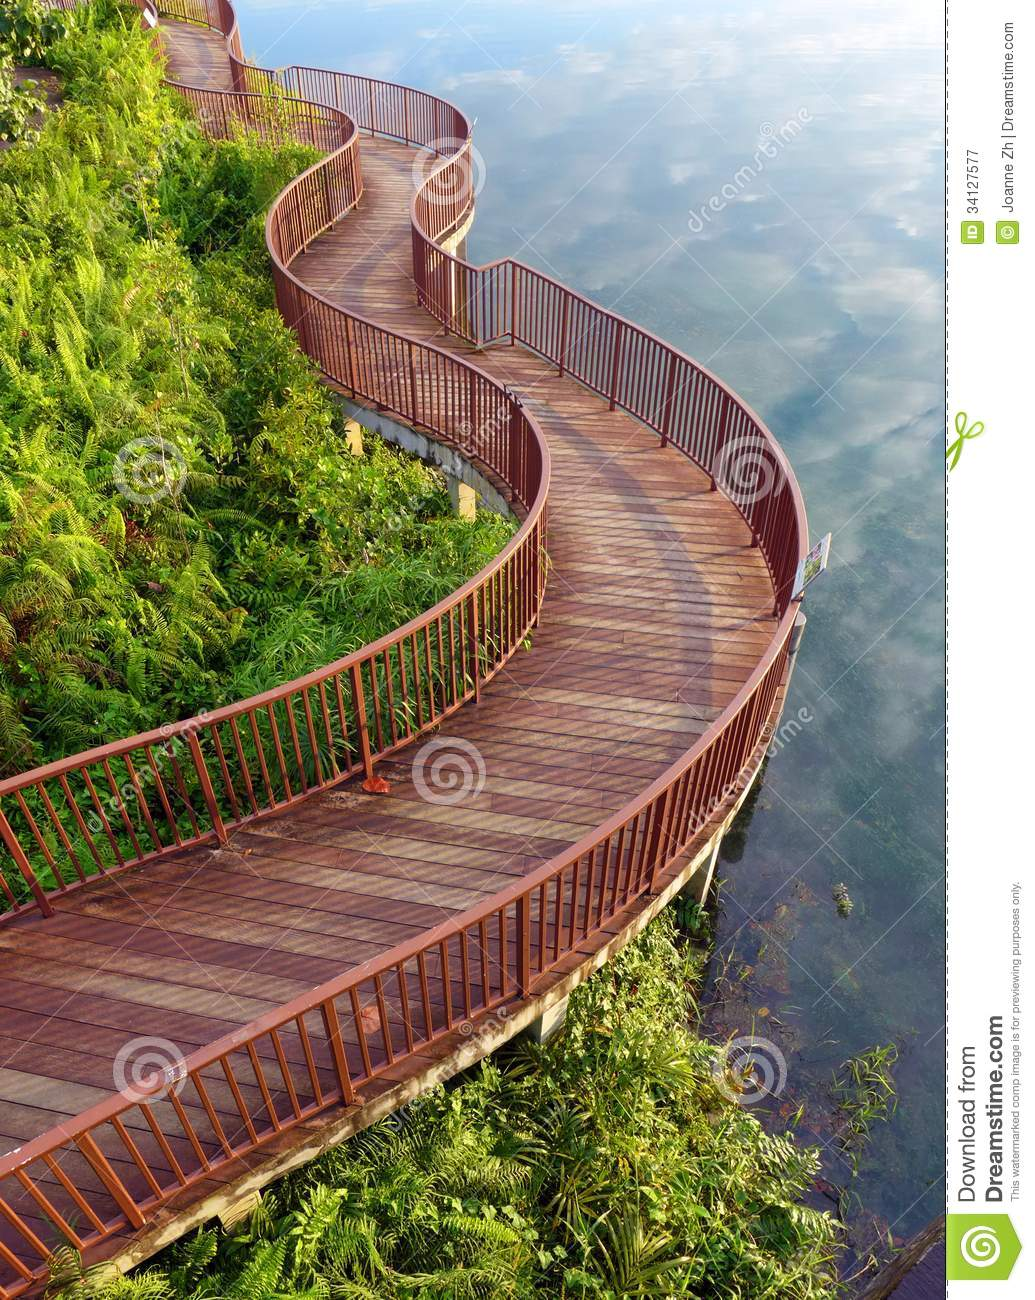 Royalty Free Nature Images This natural style boardwalk